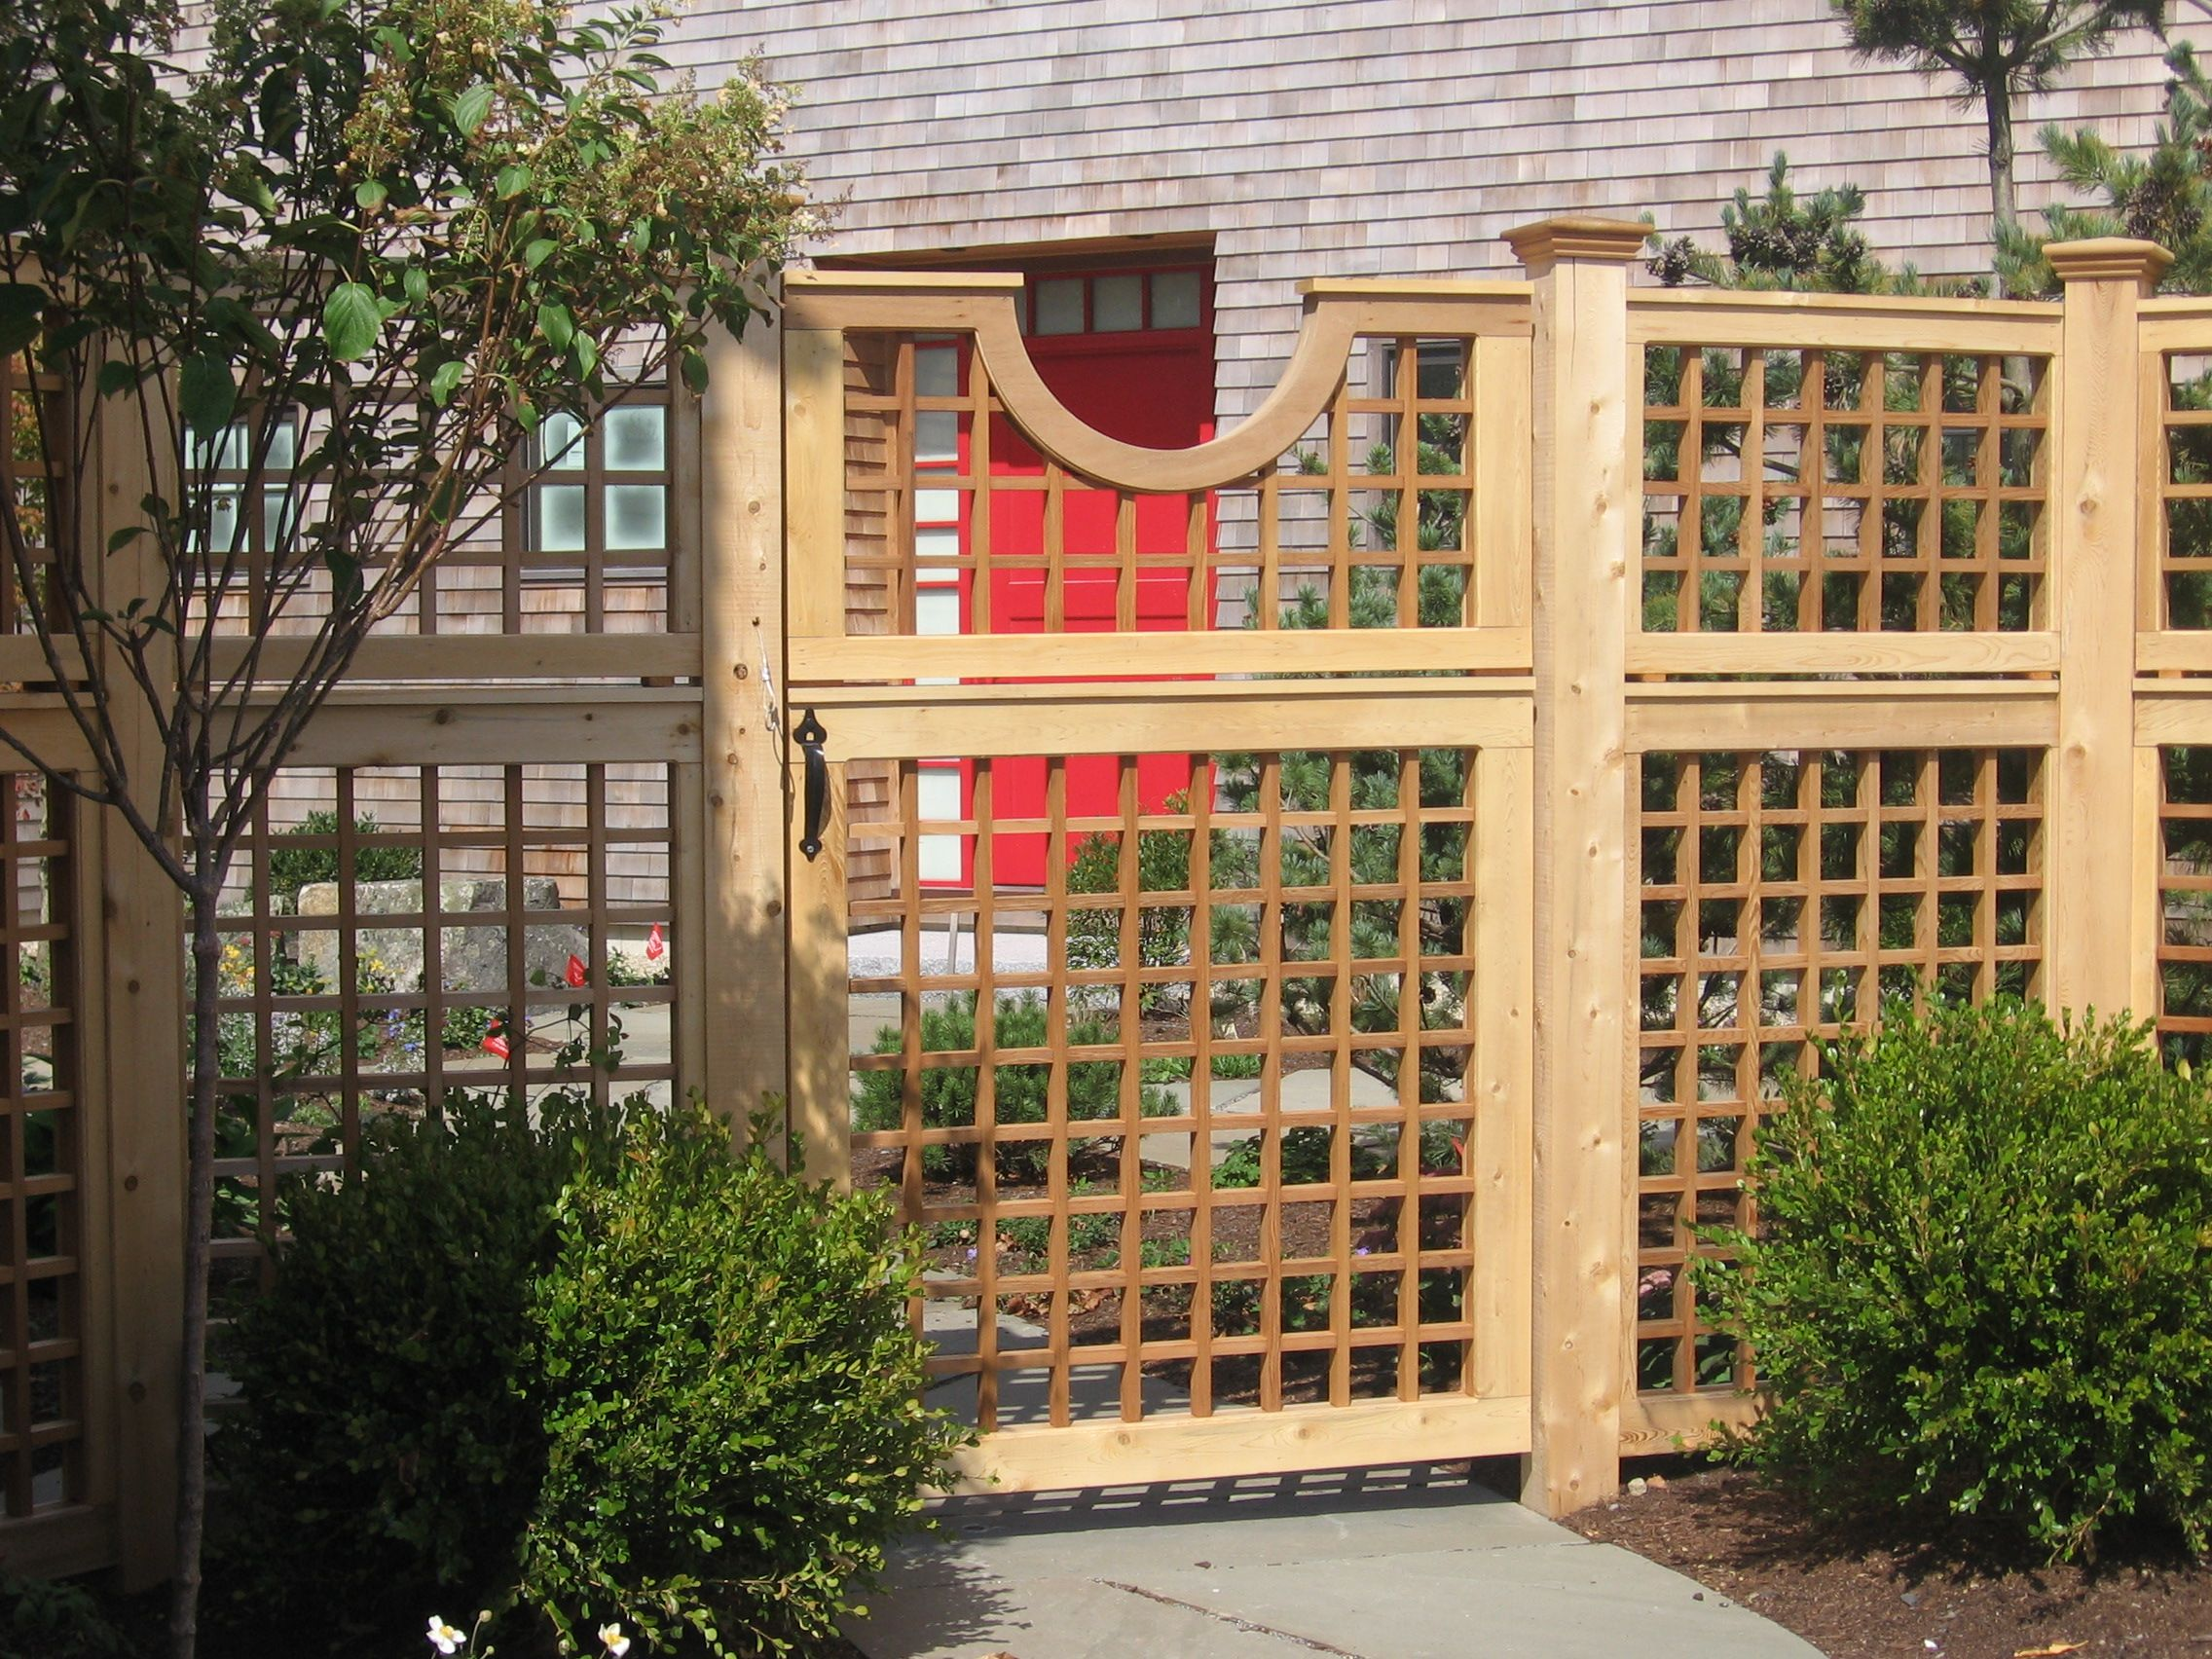 17 best images about gate and fence design on pinterest fence styles entry gates and wooden - Fence Gate Design Ideas